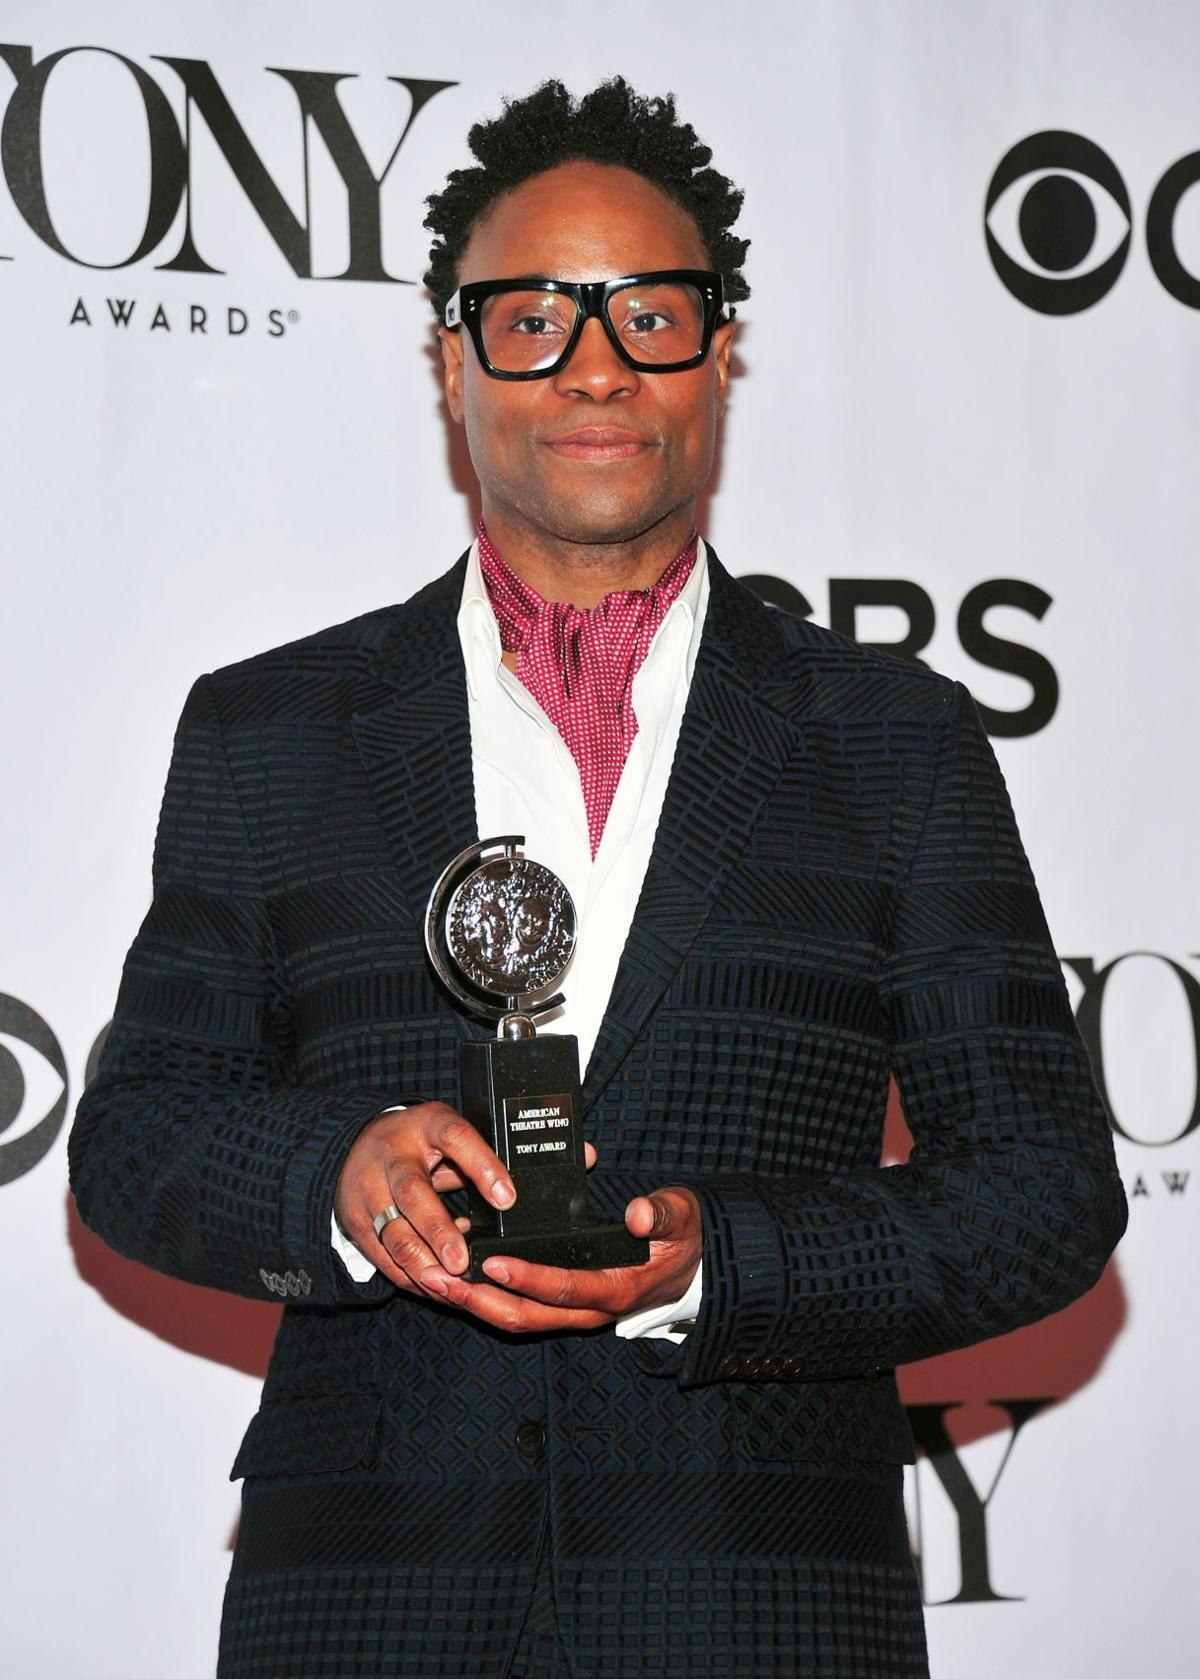 Billy Porter says goodbye to role that 'taught me to dream'